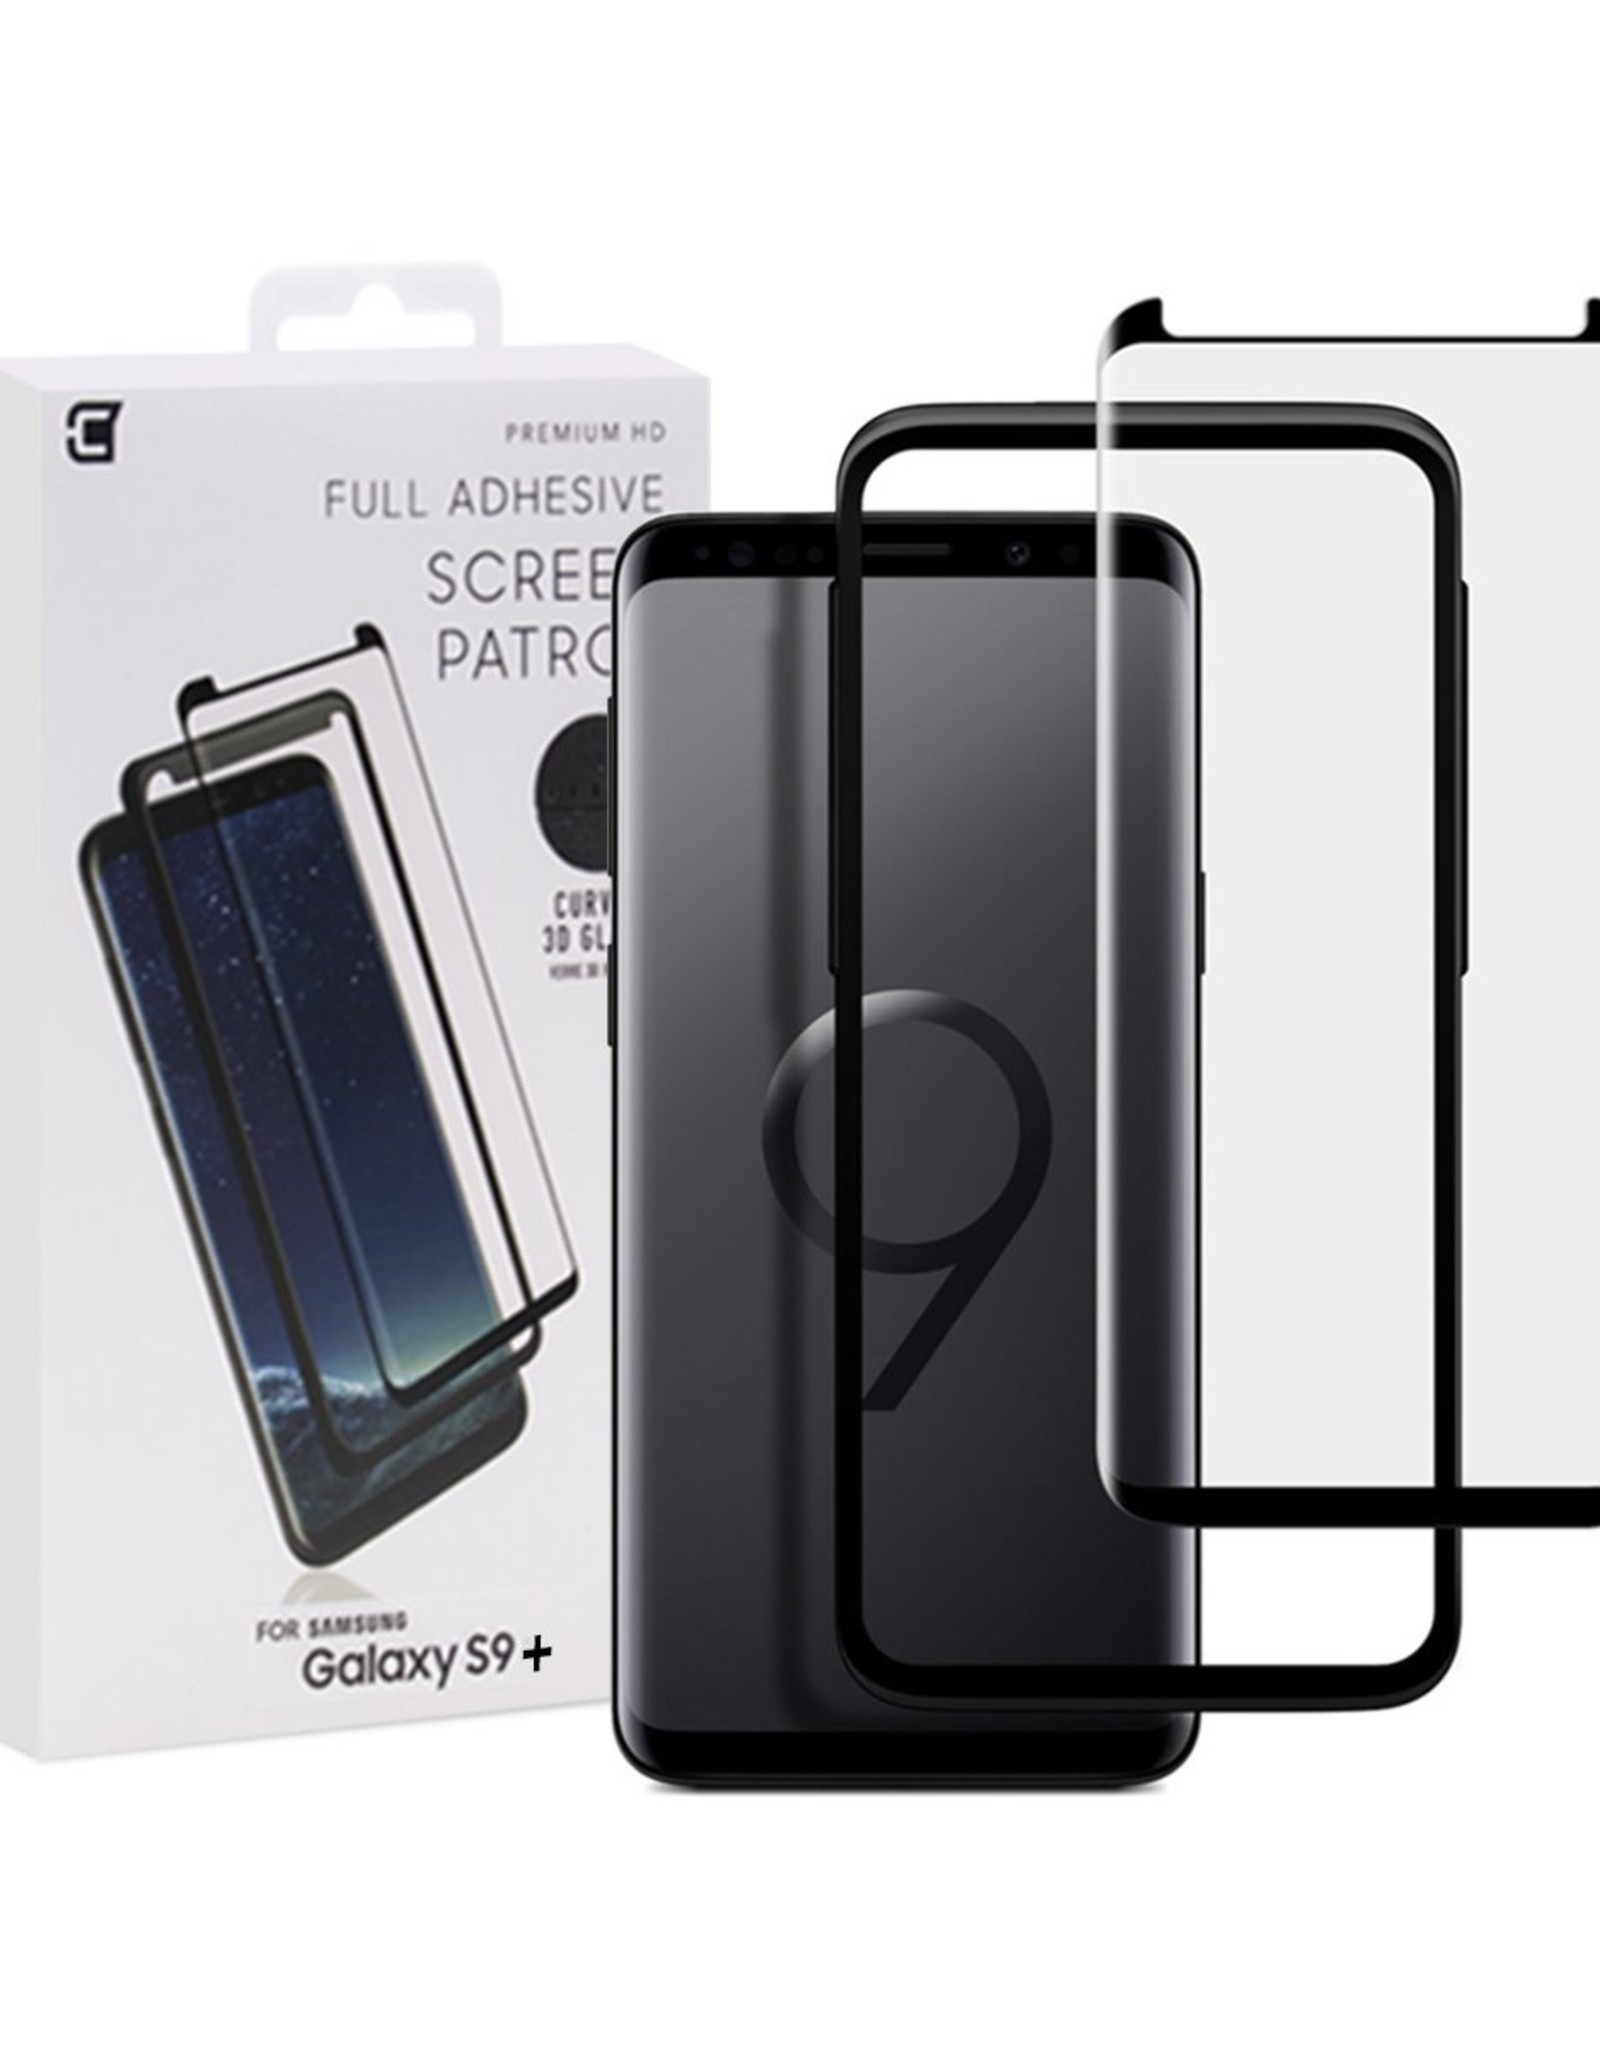 Caseco Caseco Screenflex - Flexible Screen Protector - Samsung S9 Plus CC-SFX-GS9P